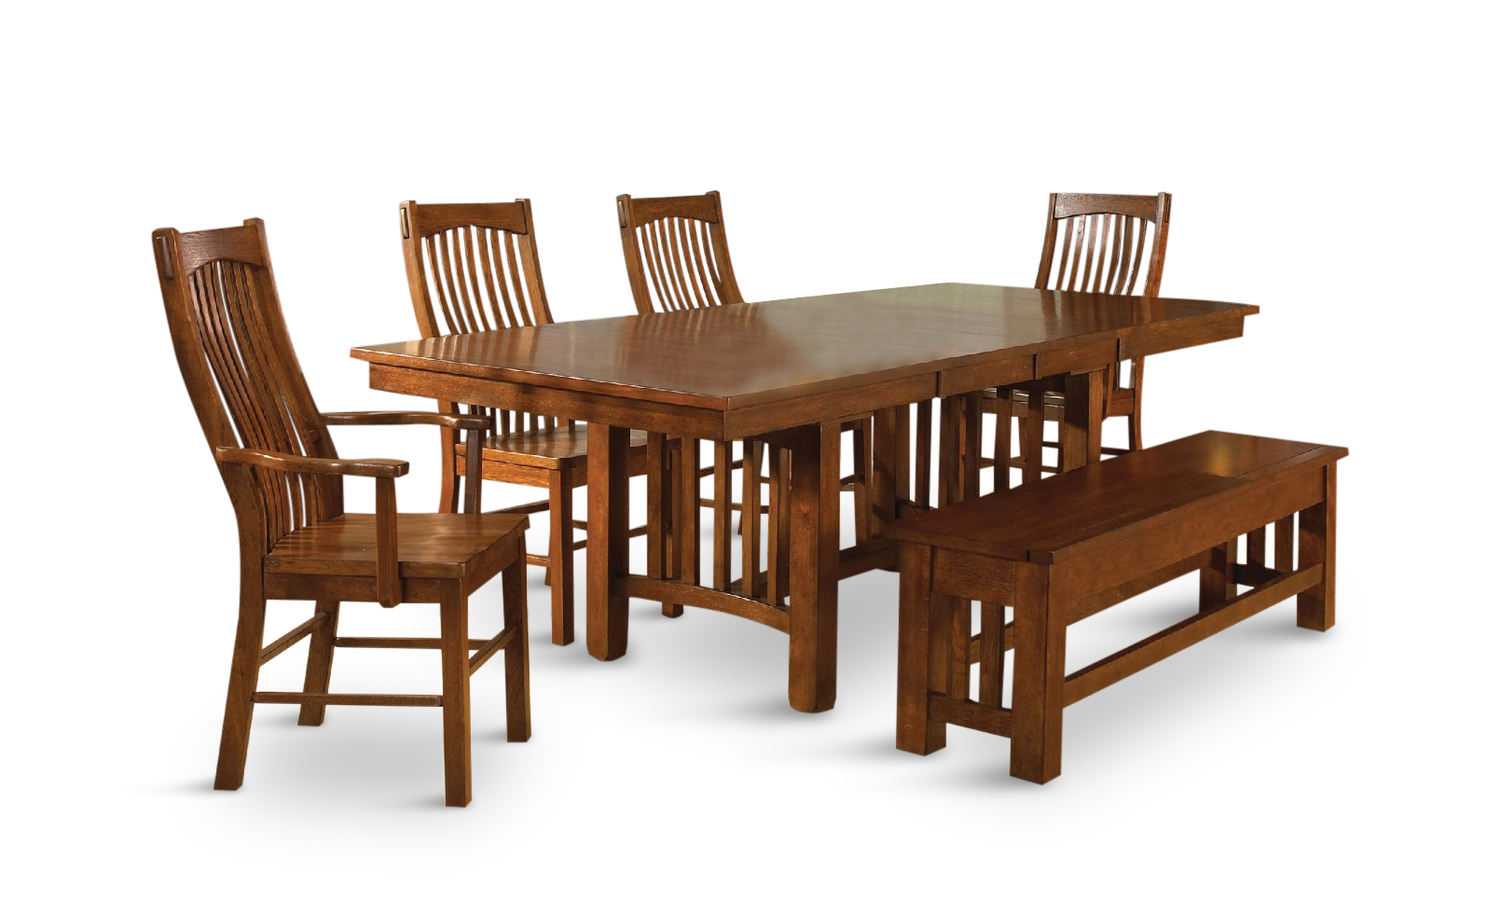 Brilliant Northport Dining Table With 4 Chairs Creativecarmelina Interior Chair Design Creativecarmelinacom